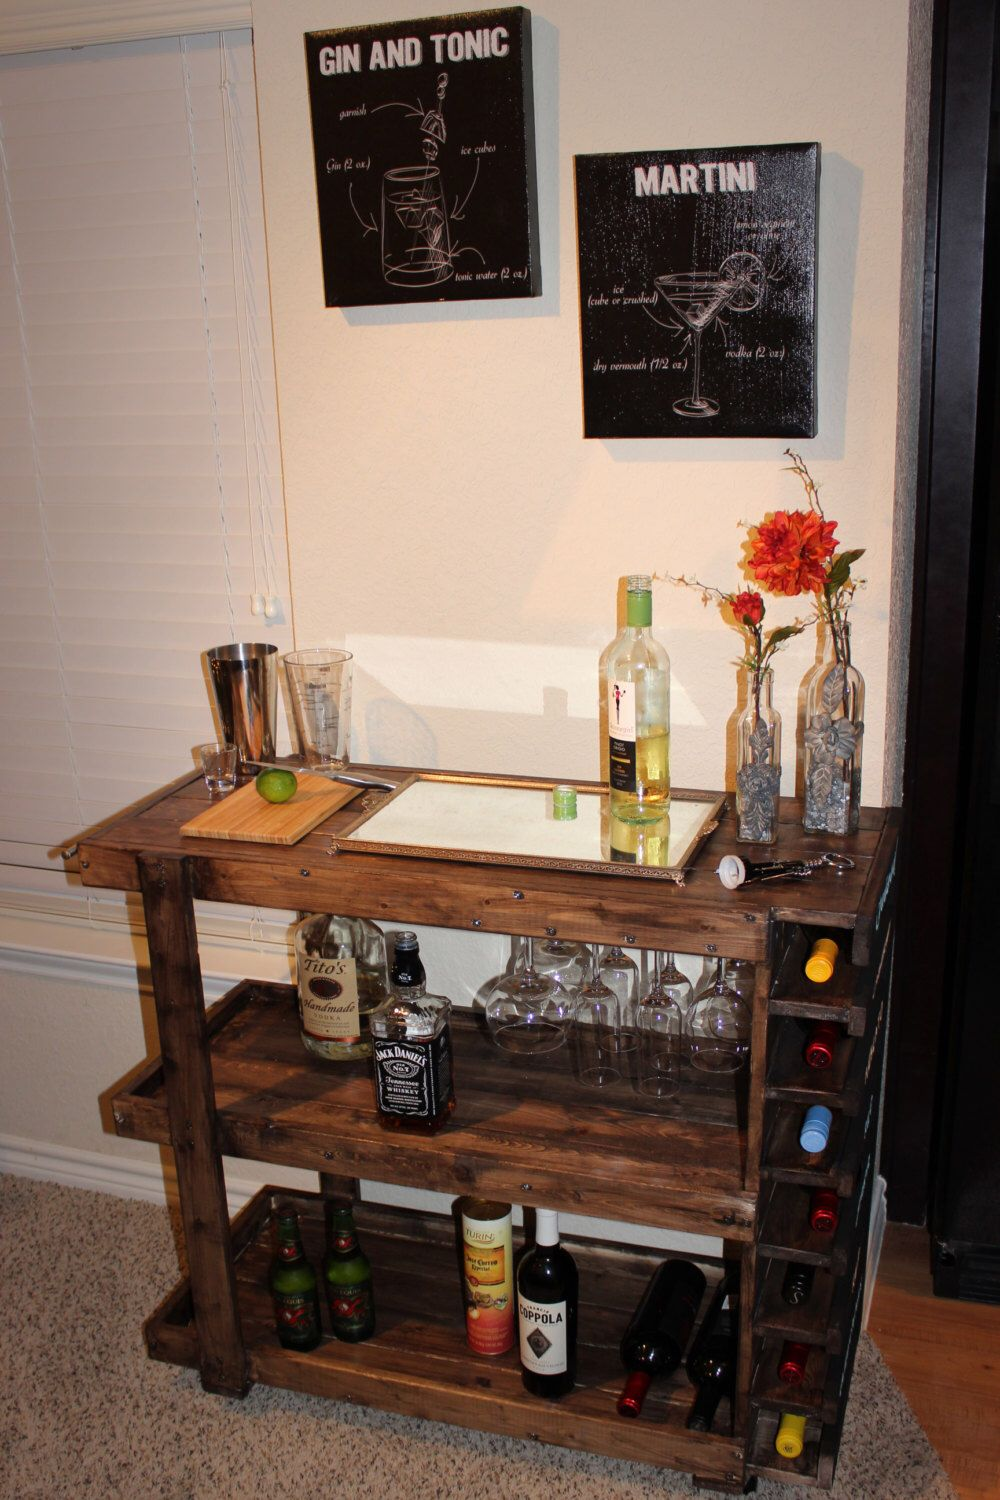 Handcrafted Wooden Bar Cart By Calderonconstruction On Etsy Https Www Etsy Com Listing 210786995 Handcrafted Home Bar Plans Wooden Bar Cart Home Bar Cabinet